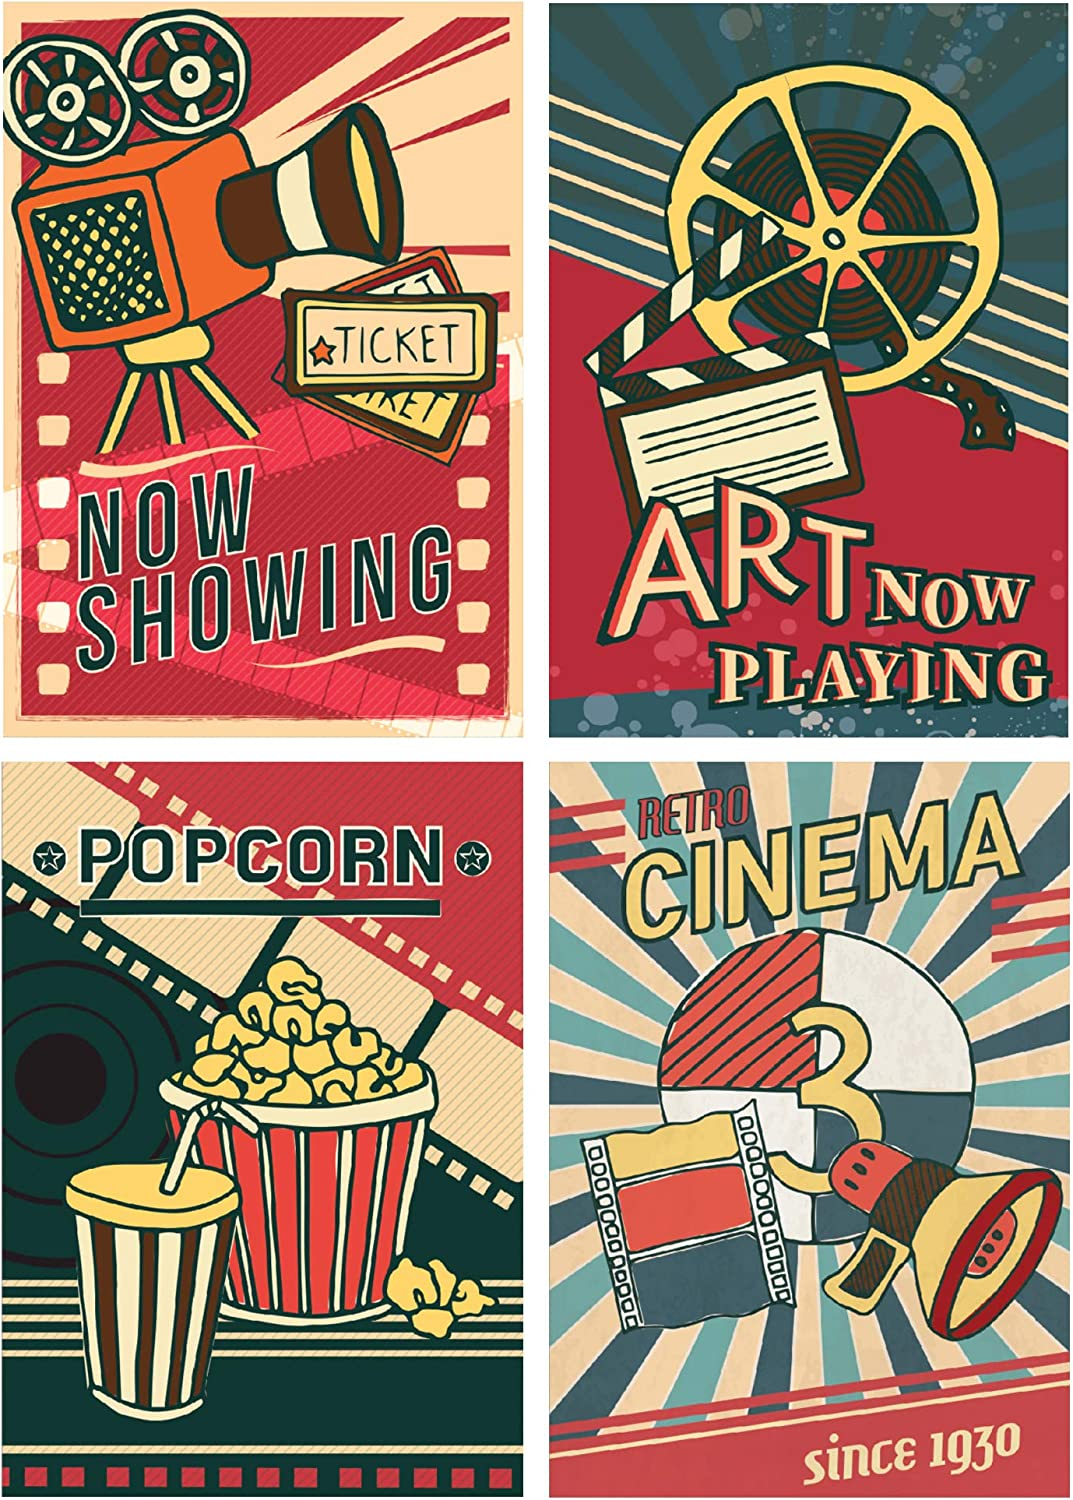 "SCENE: YOURSELF Movie Theater Decor, Movie Night Decorations, Movie Theme Party Decorations, Theater Room Decor, 11.7"" x 16.5"", Unframed, Paper, Matte Lamination, Set of 4 Posters, Multiple"